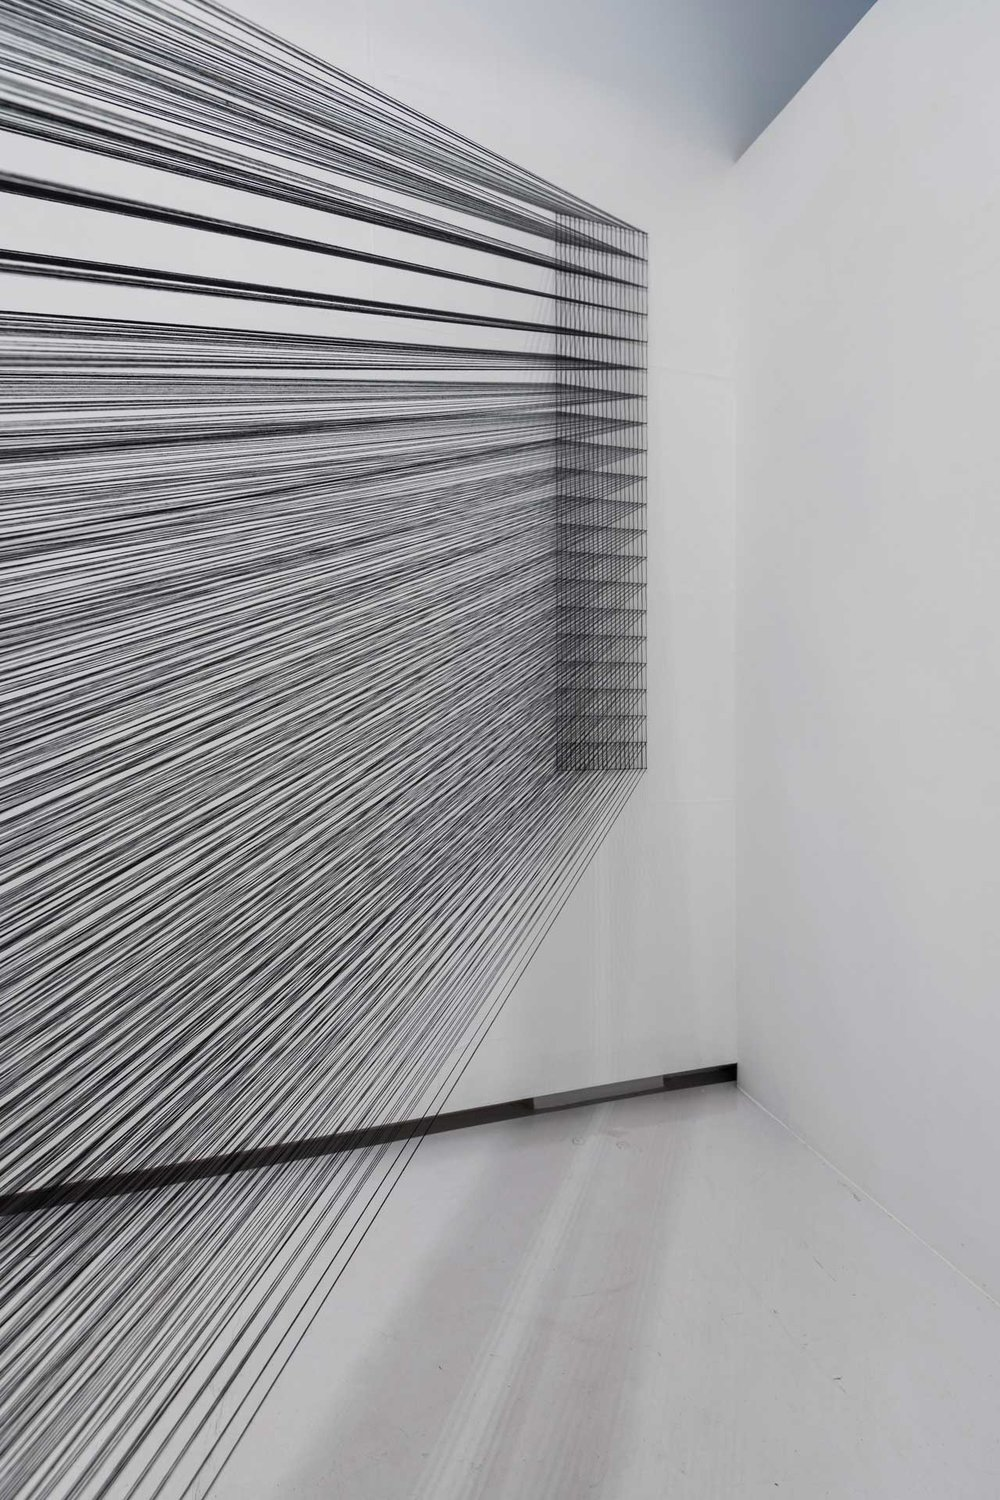 4.EunHyeKang_Full or Empty No.06 _Cotton yarn_Site-specific installation_2017.JPG